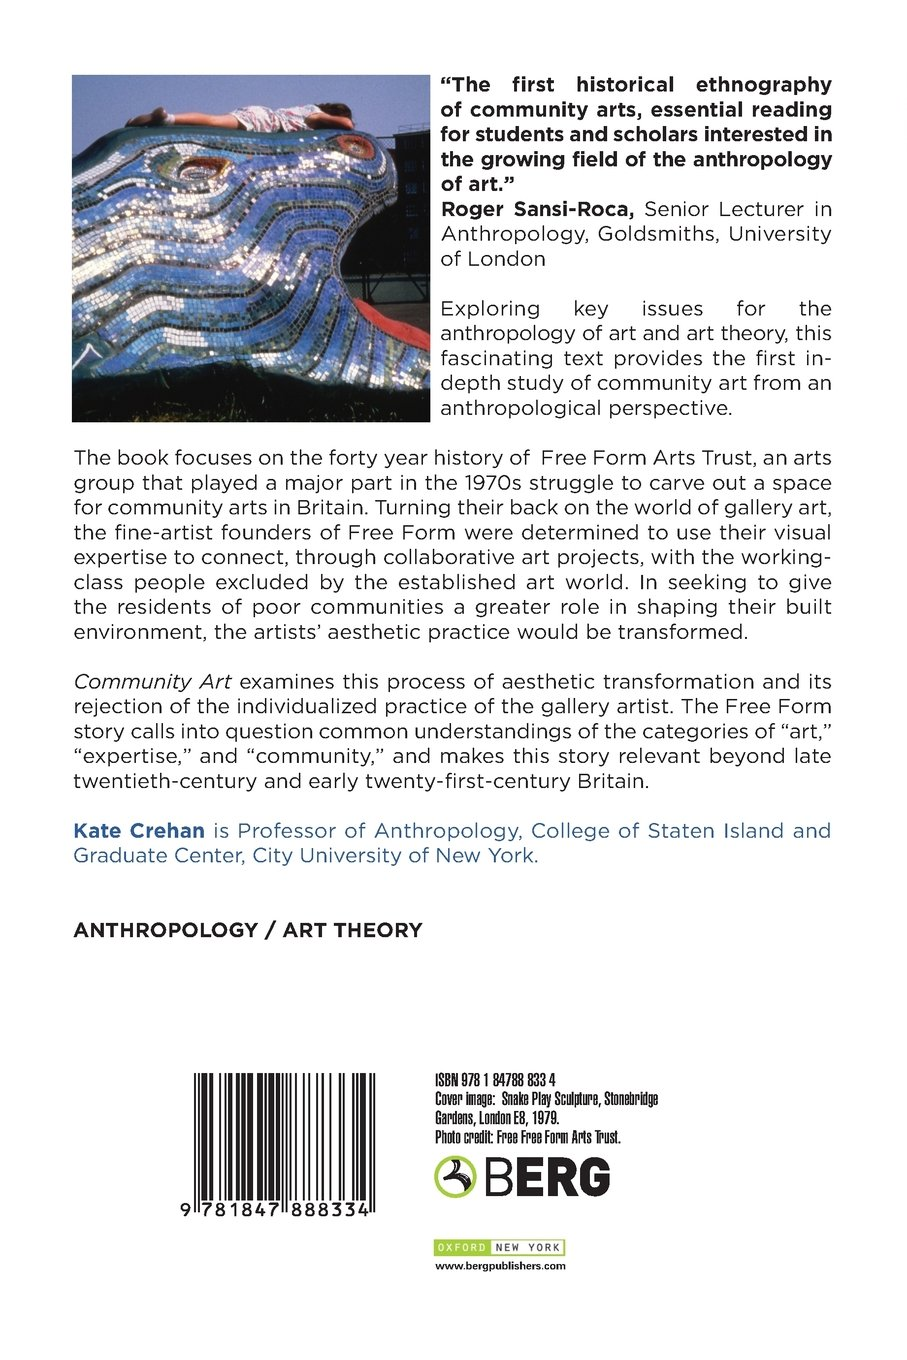 Community Art: Amazon co uk: Kate Crehan: 9781847888334: Books